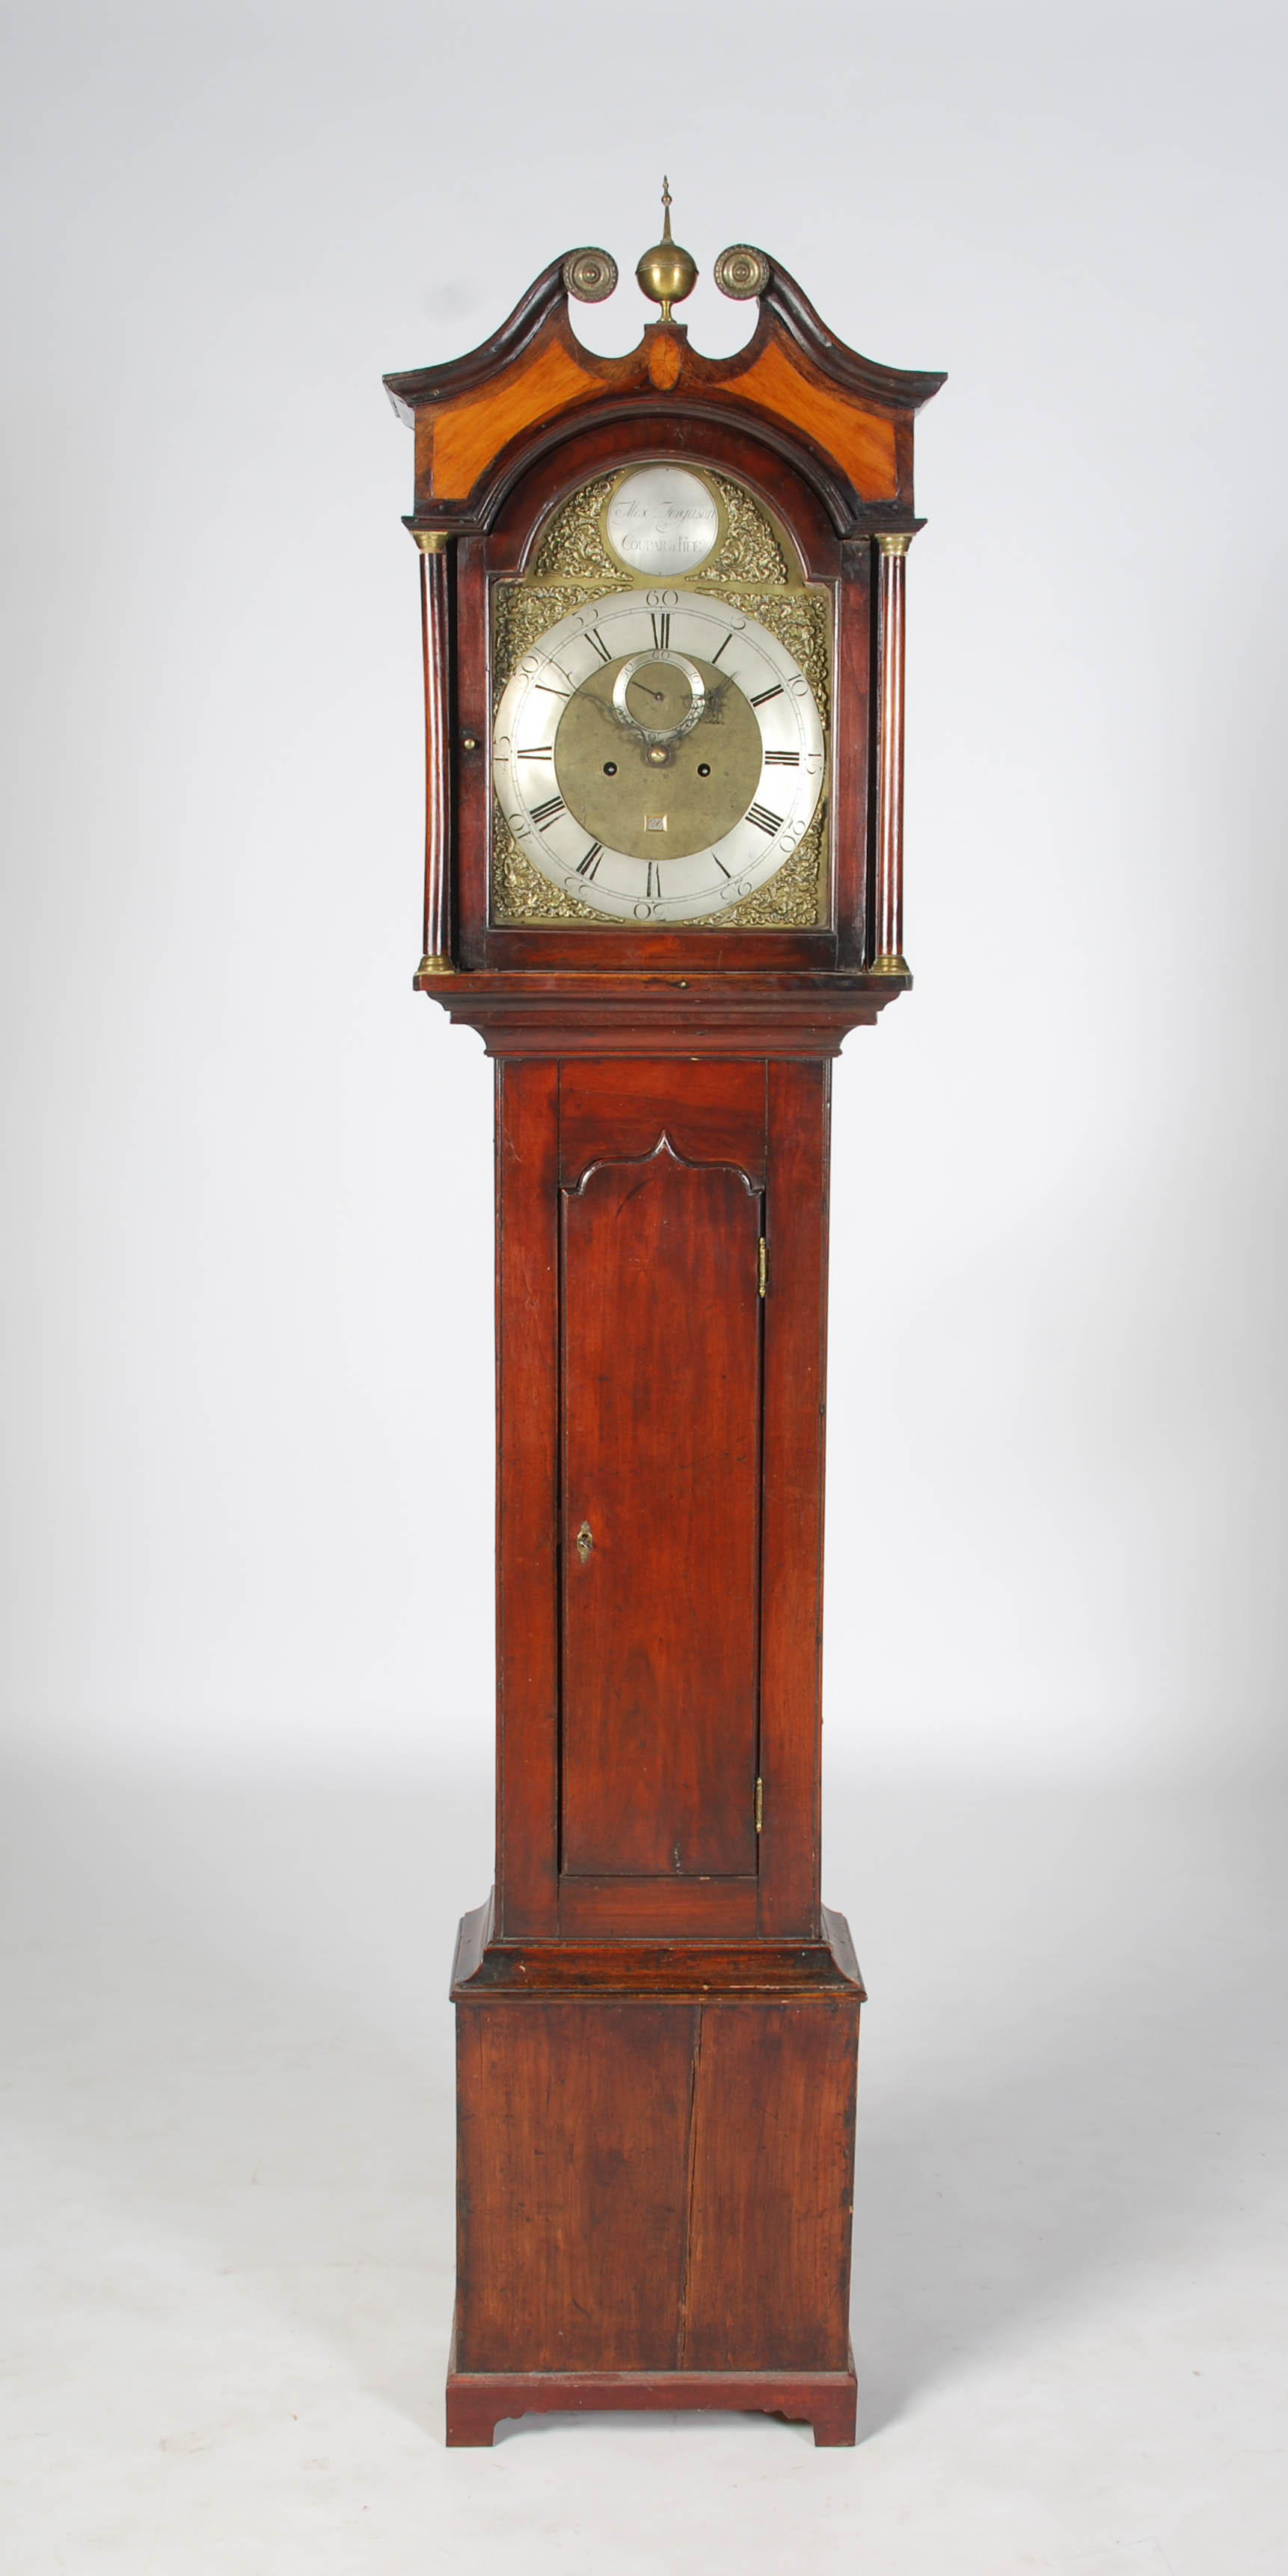 Lot 5 - A George III mahogany longcase clock, Alexr. Ferguson, Coupar of Fife, the brass dial with silver